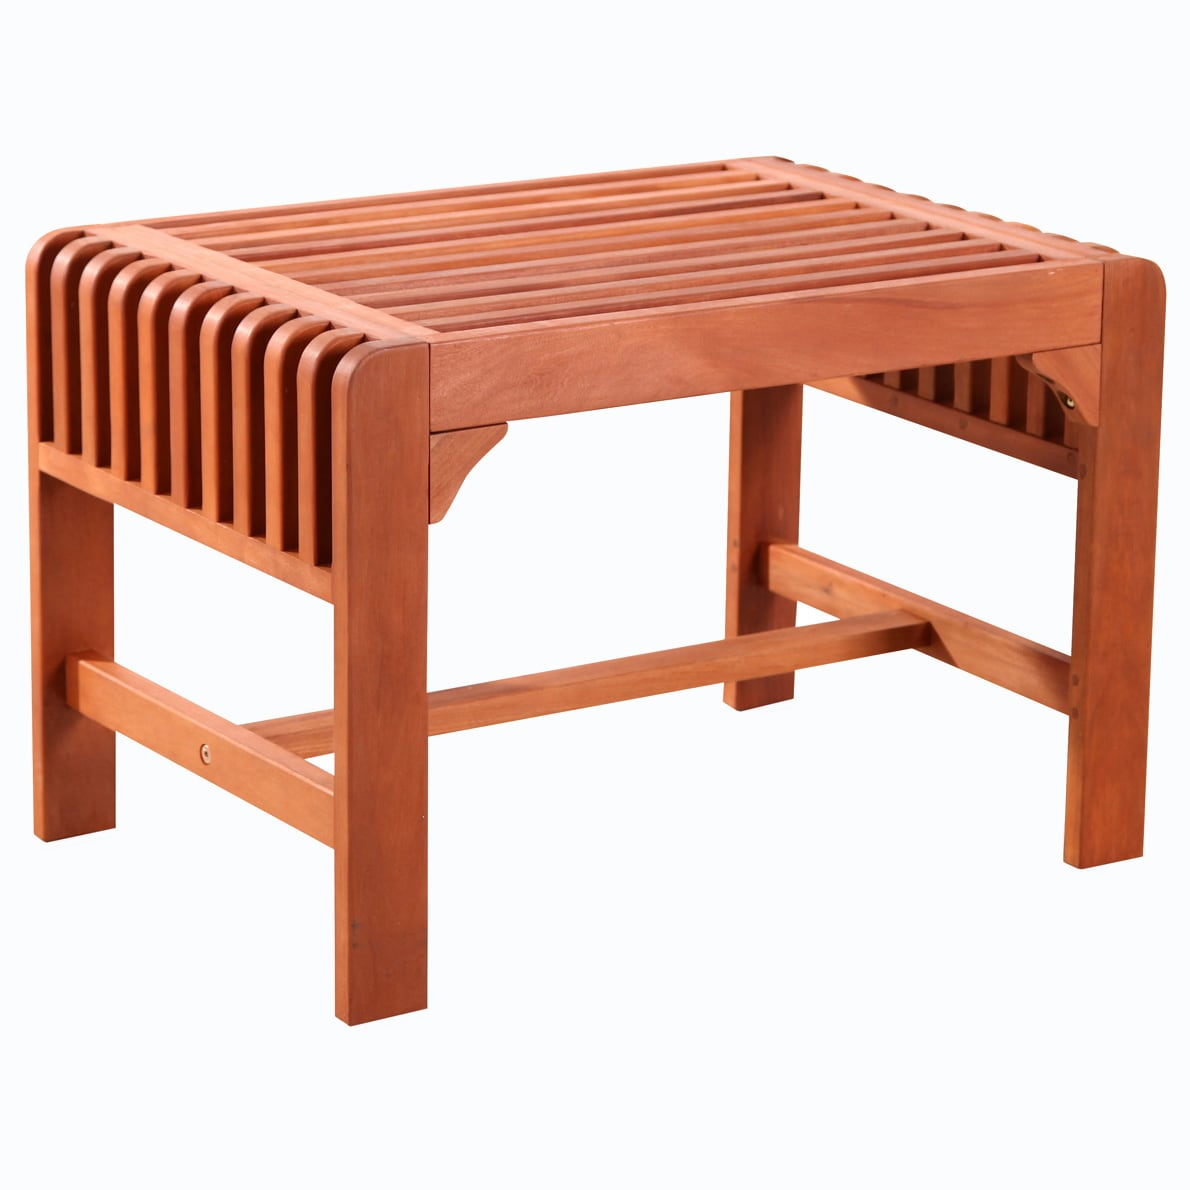 Shop Backless Single Wood Outdoor Bench Free Shipping On Orders